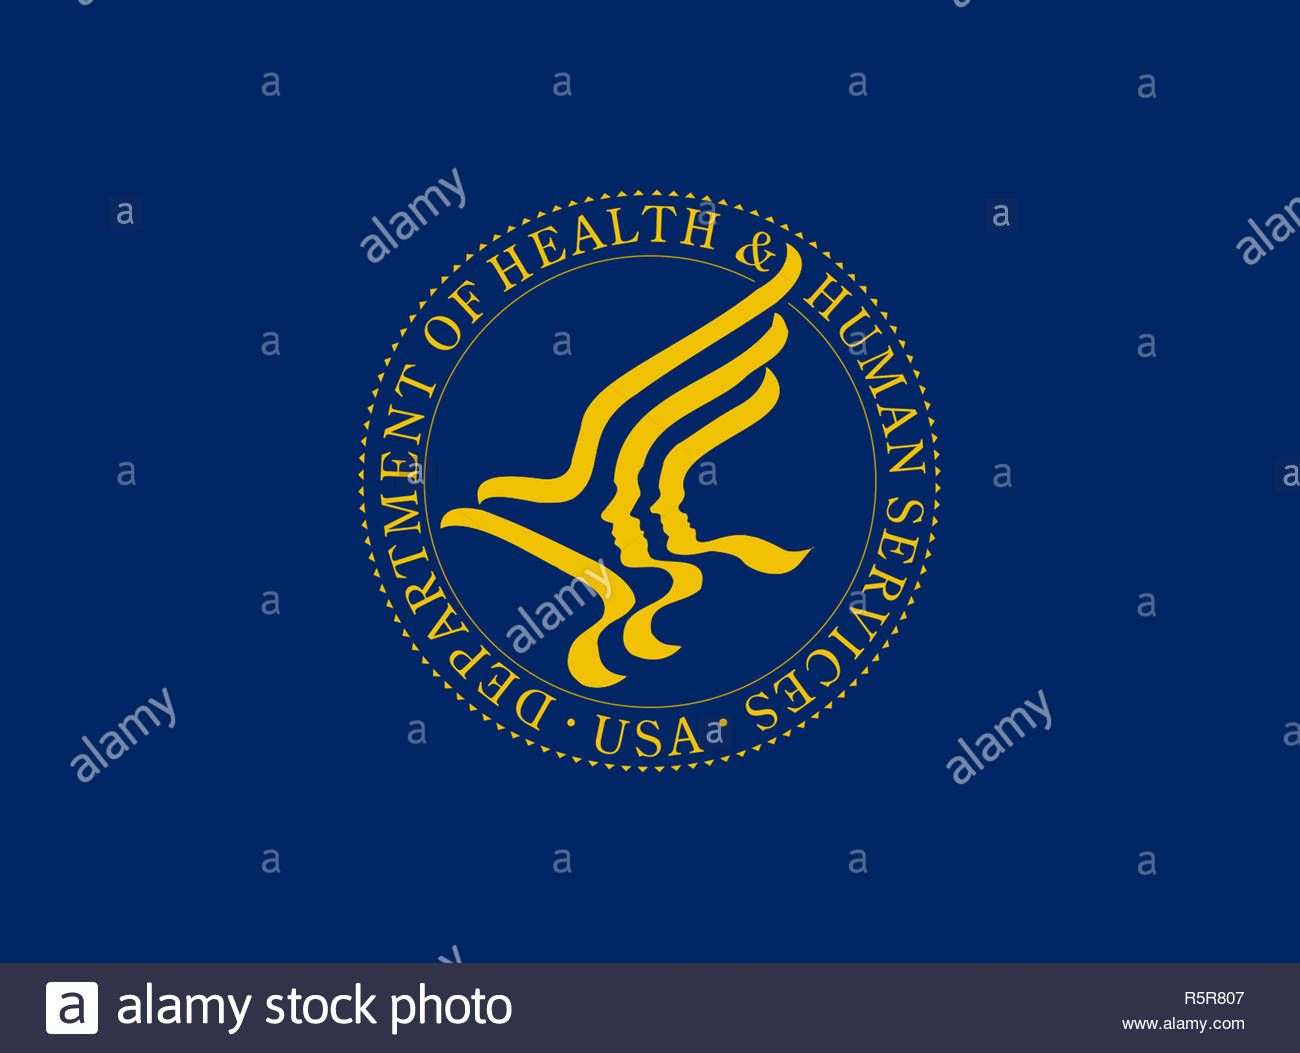 United States Department of Health and Human Services logo sign - Stock Image